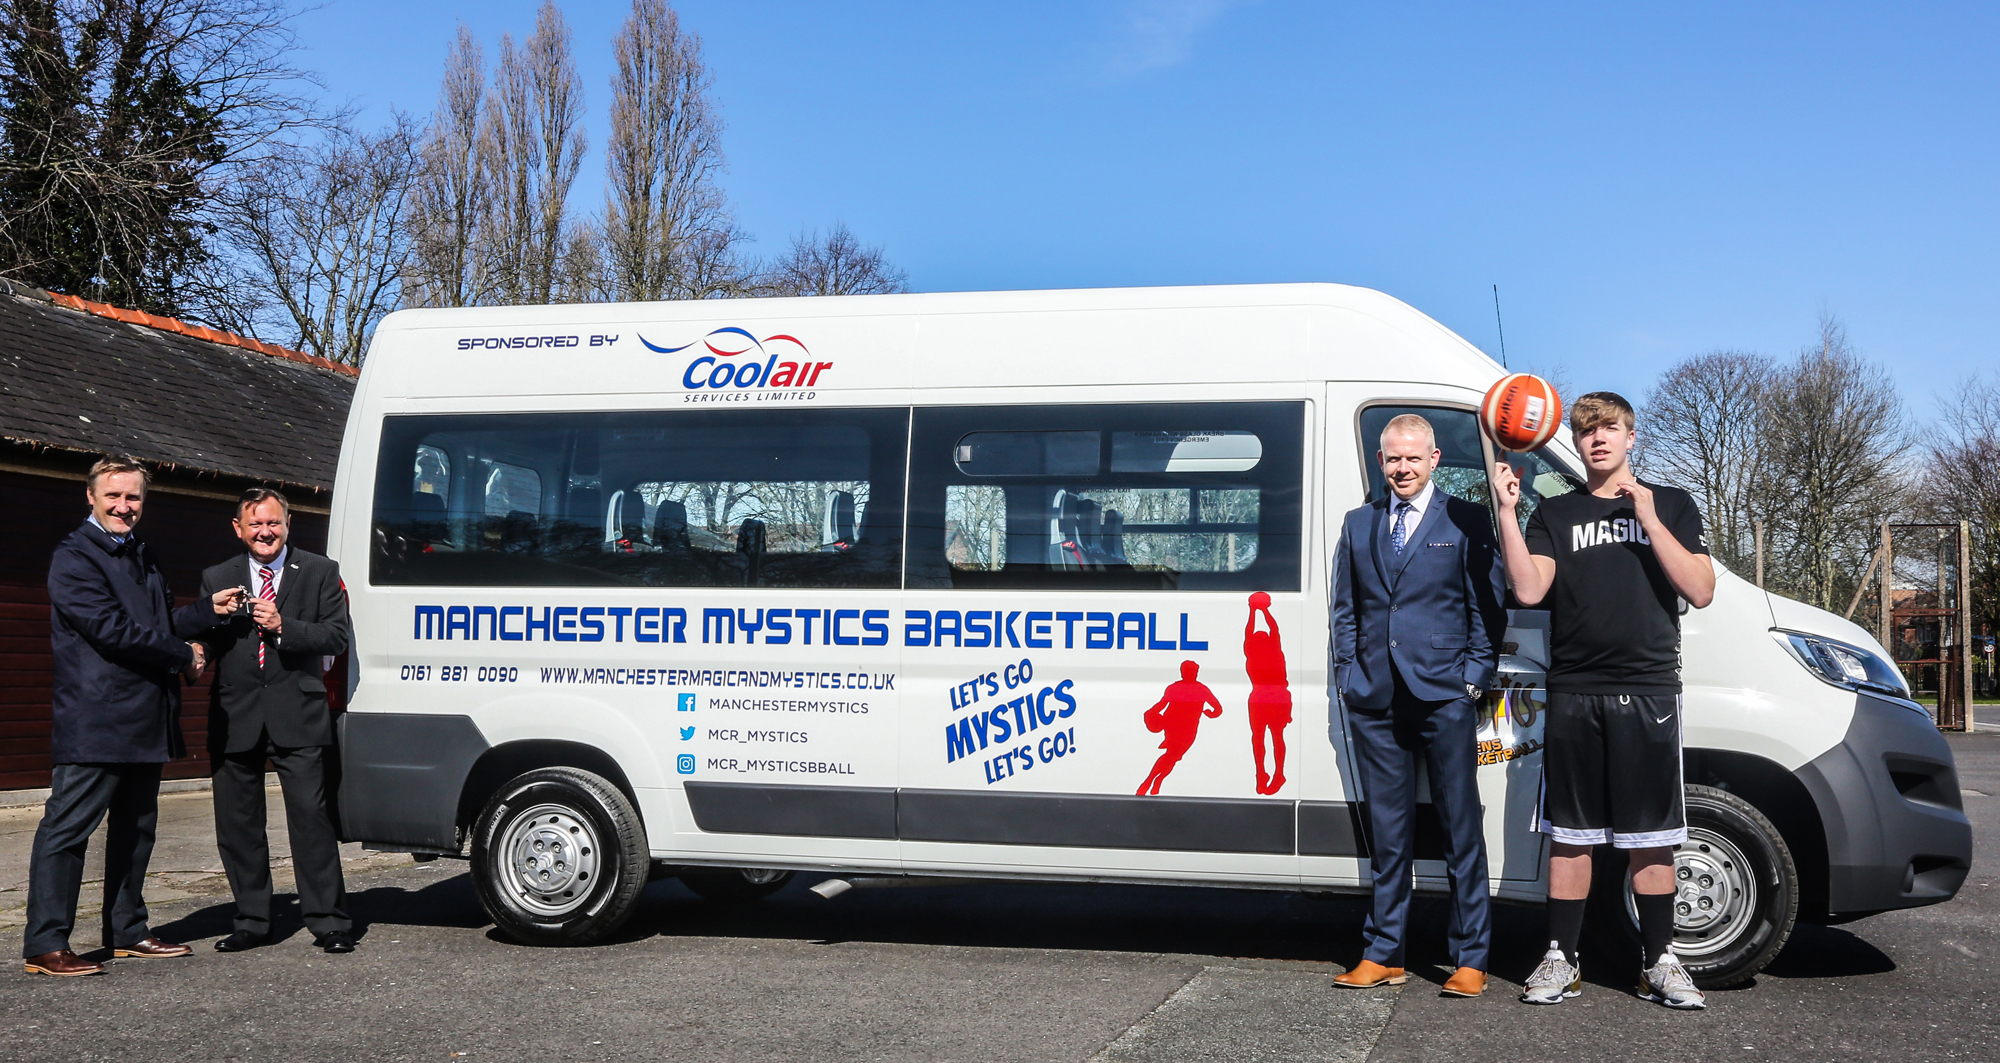 Phil Gordos, club chief executive, Andy Smith, Coolair Service Ltd's UK operations director, Ian Wilson, Coolair Service Ltd's regional operations manager, and Magic Under-16 player Ben Brocklehurst